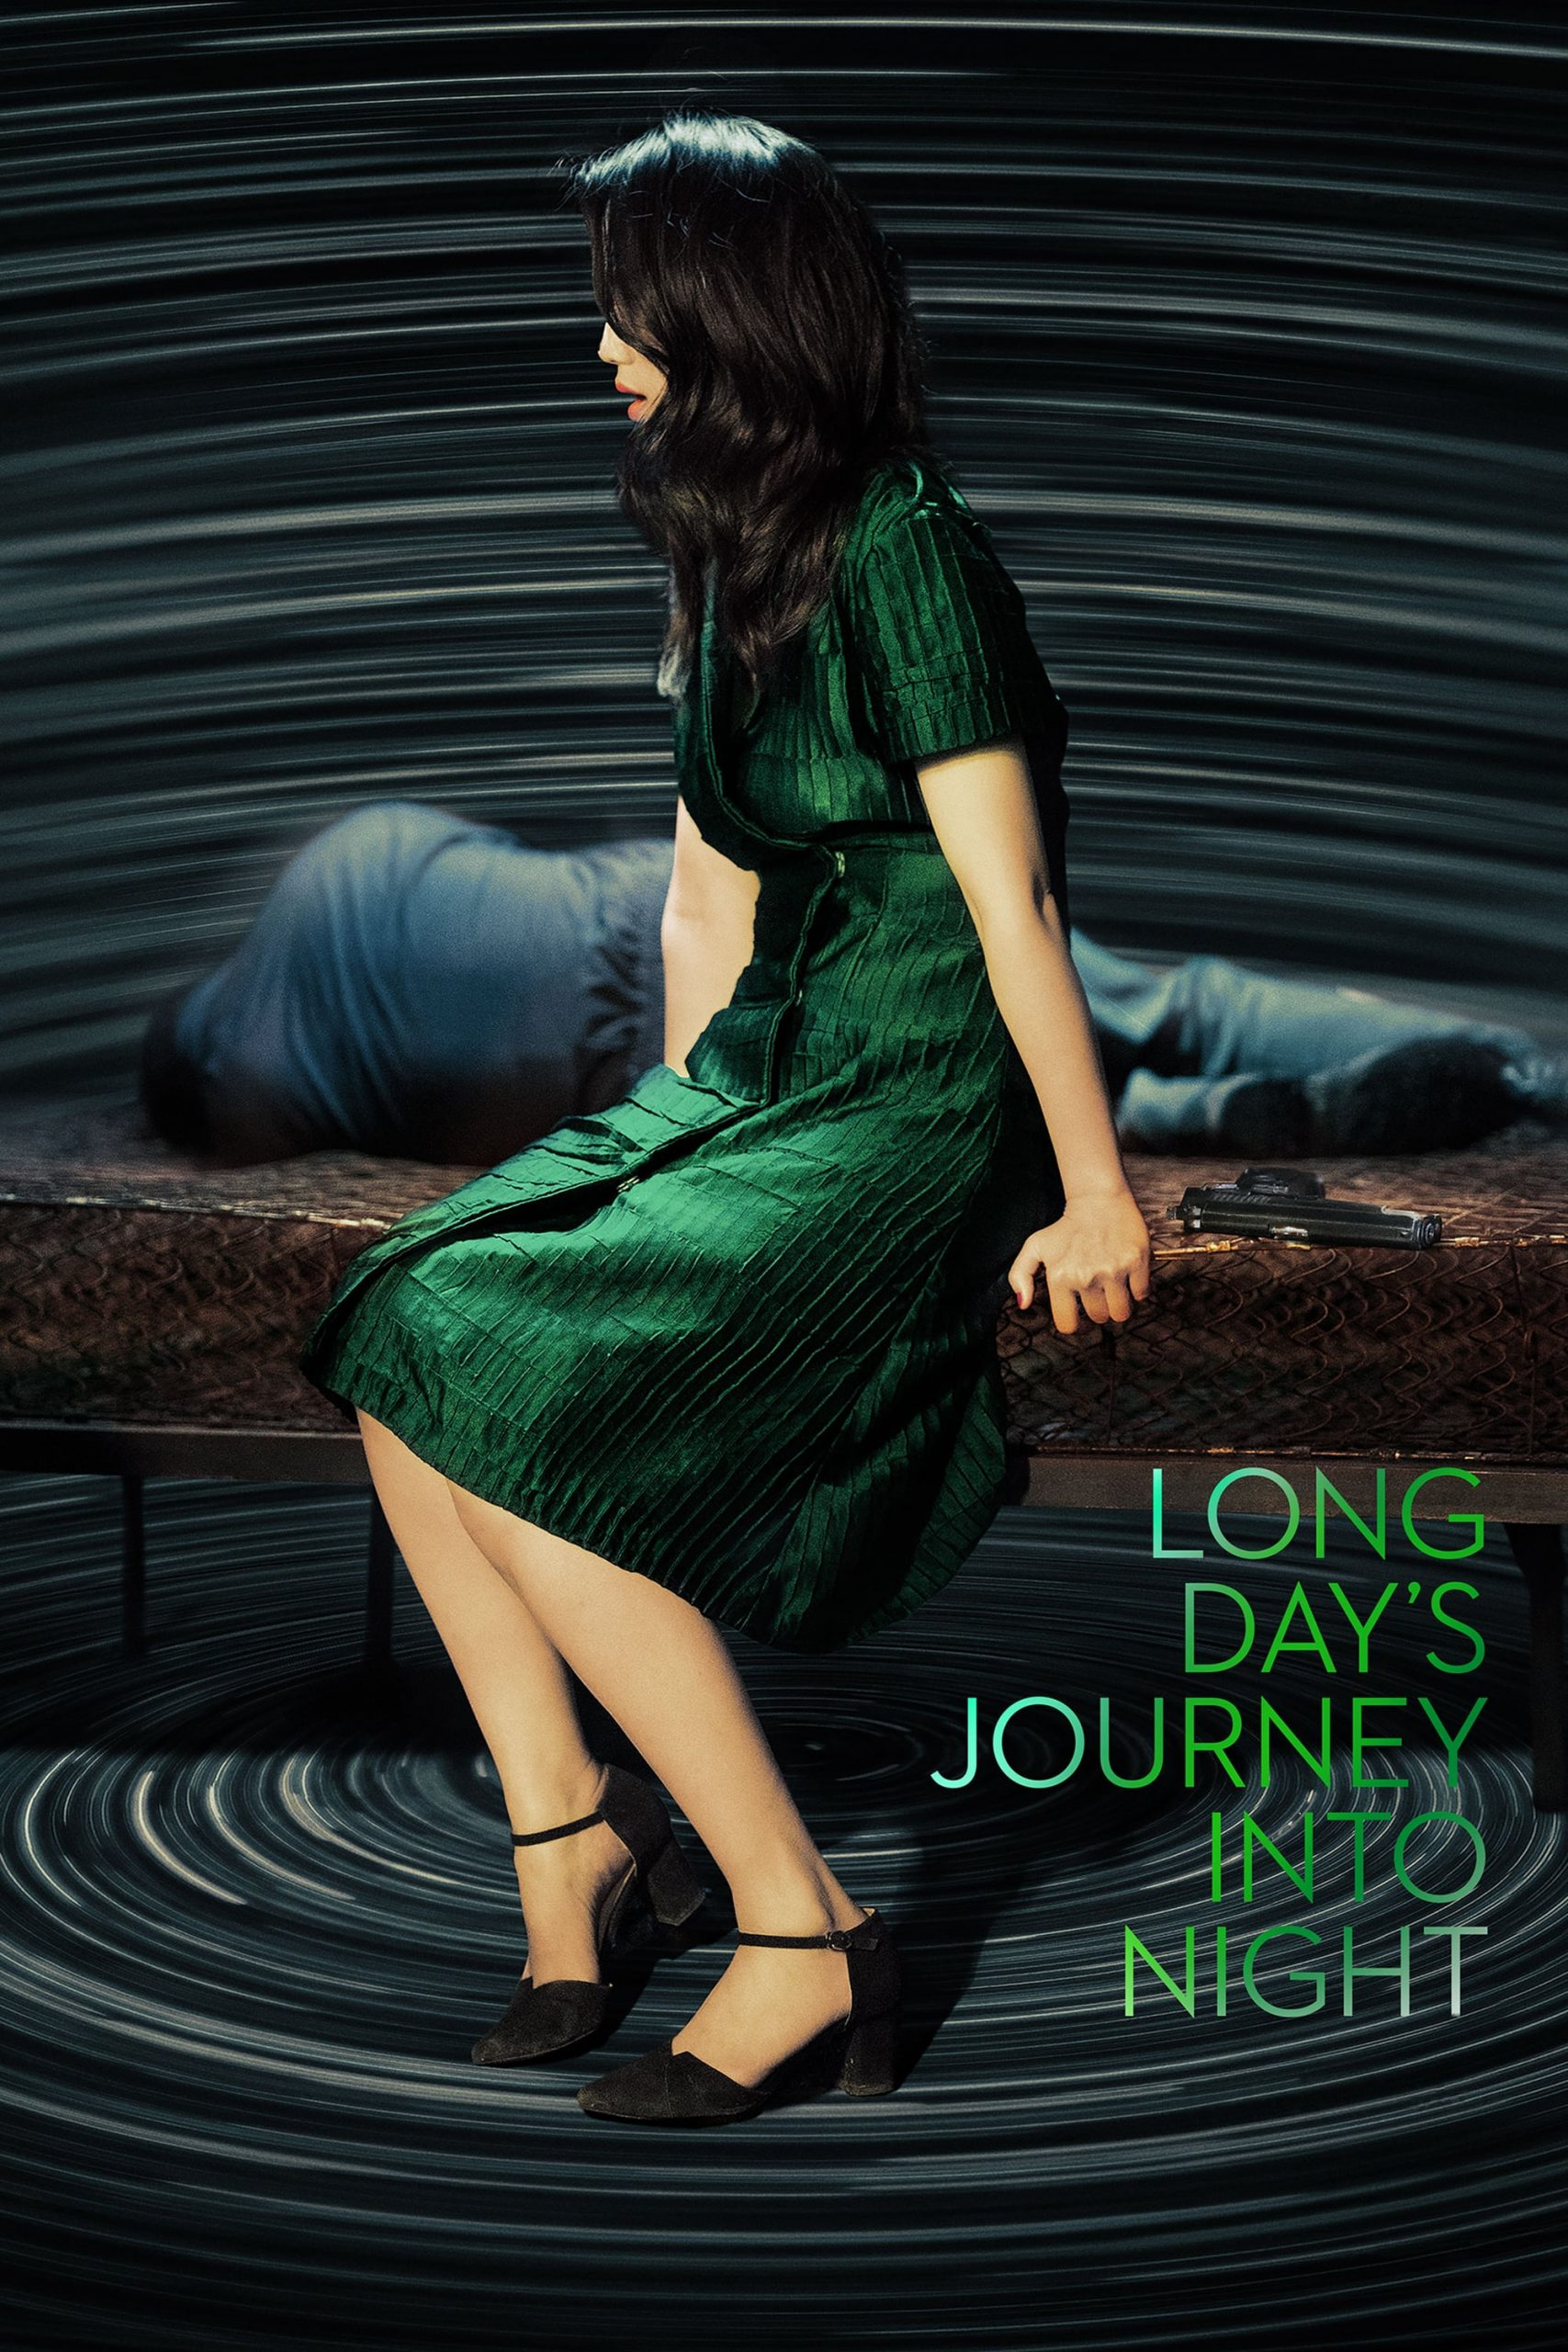 دانلود فیلم Long Day's Journey Into Night 2018